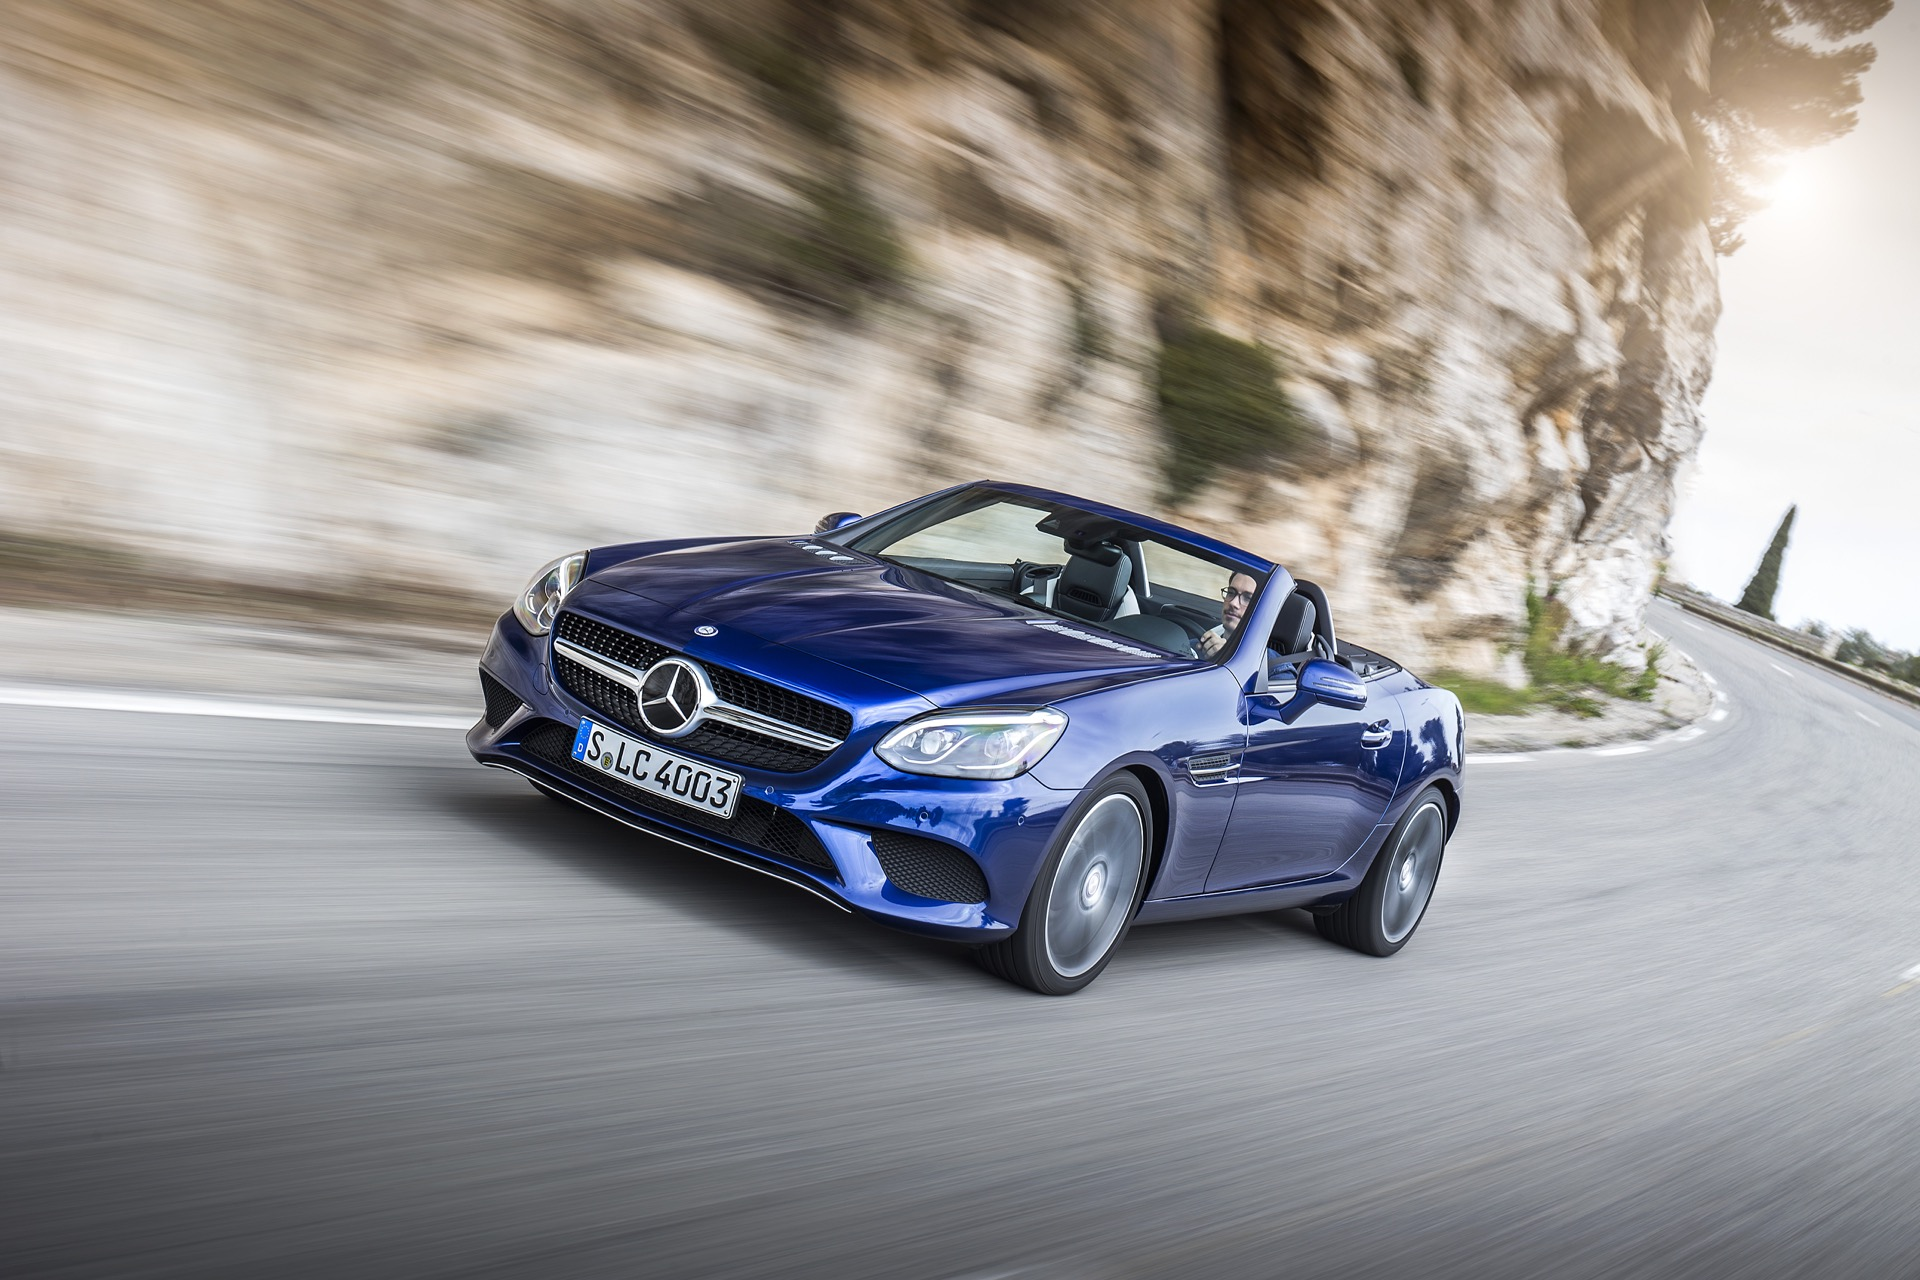 2017 Mercedes-Benz SLC Class Features Review - The Car ...